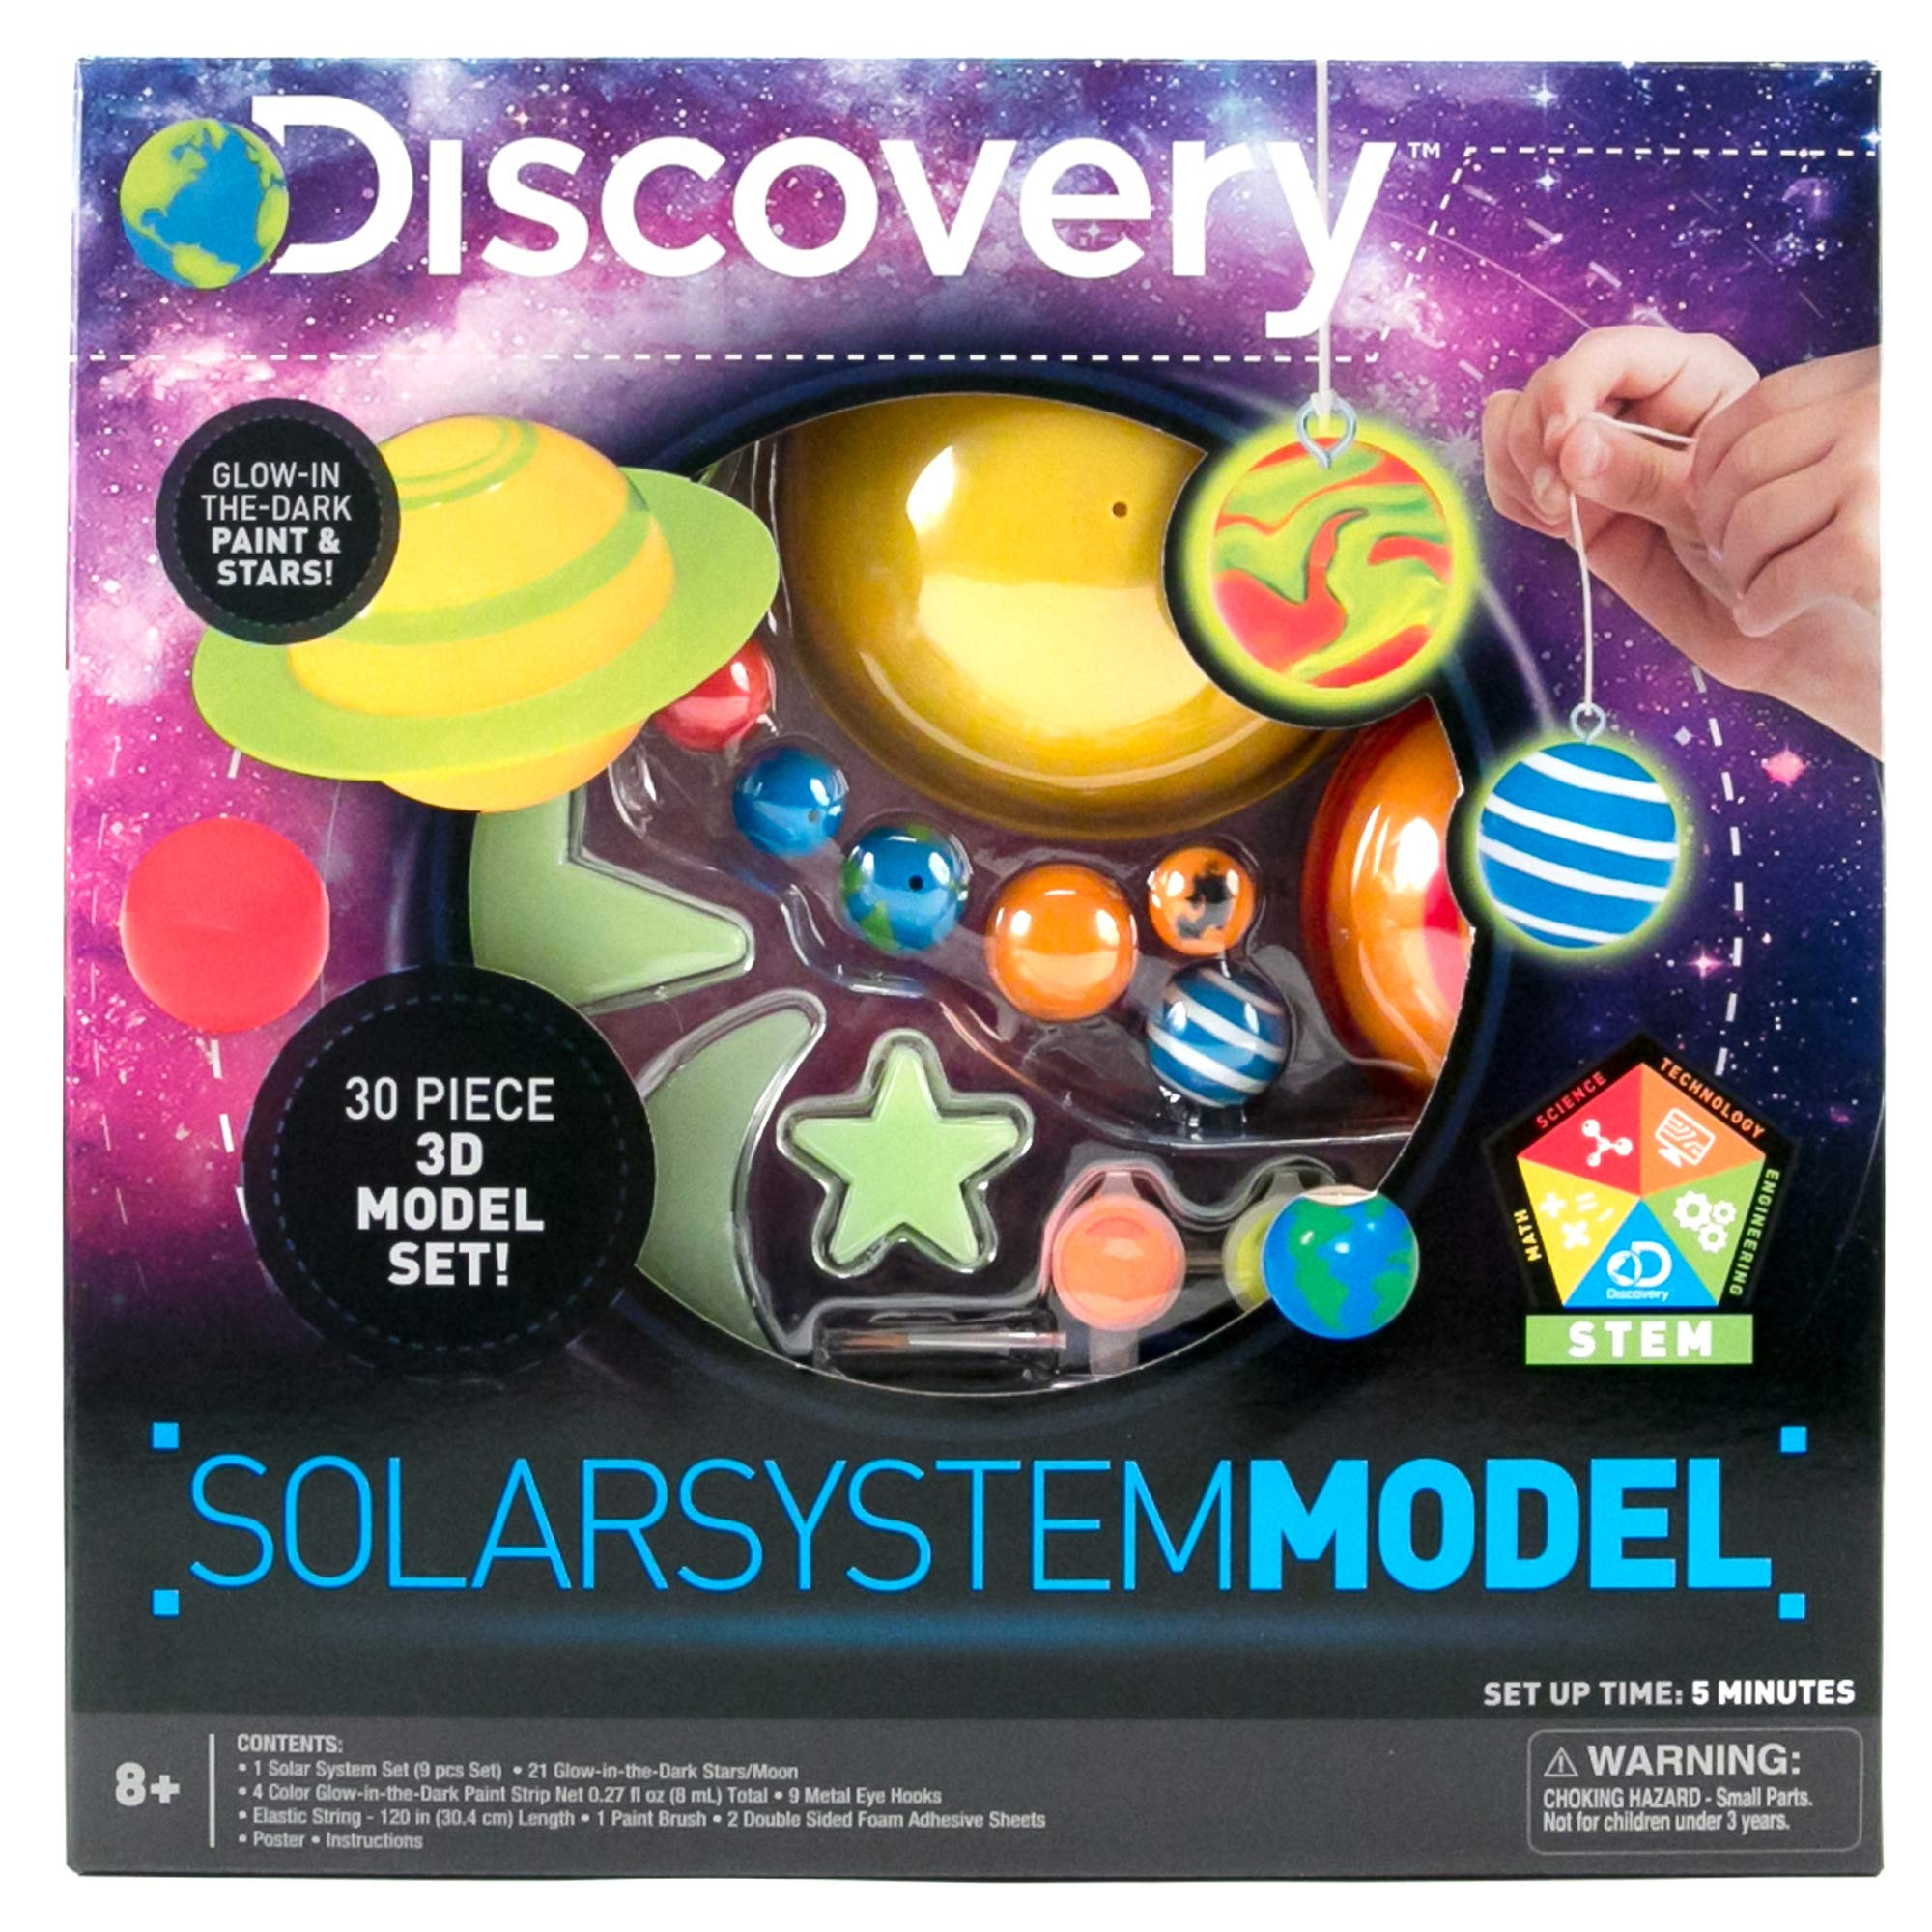 Discovery 3D Solar System by Horizon Group USA, Great Stem Science Kit, 1 Solar System, 4 Glow In The Dark Paints, 21 Glow In The Dark Ceiling & Wall Stickers & More by Discovery